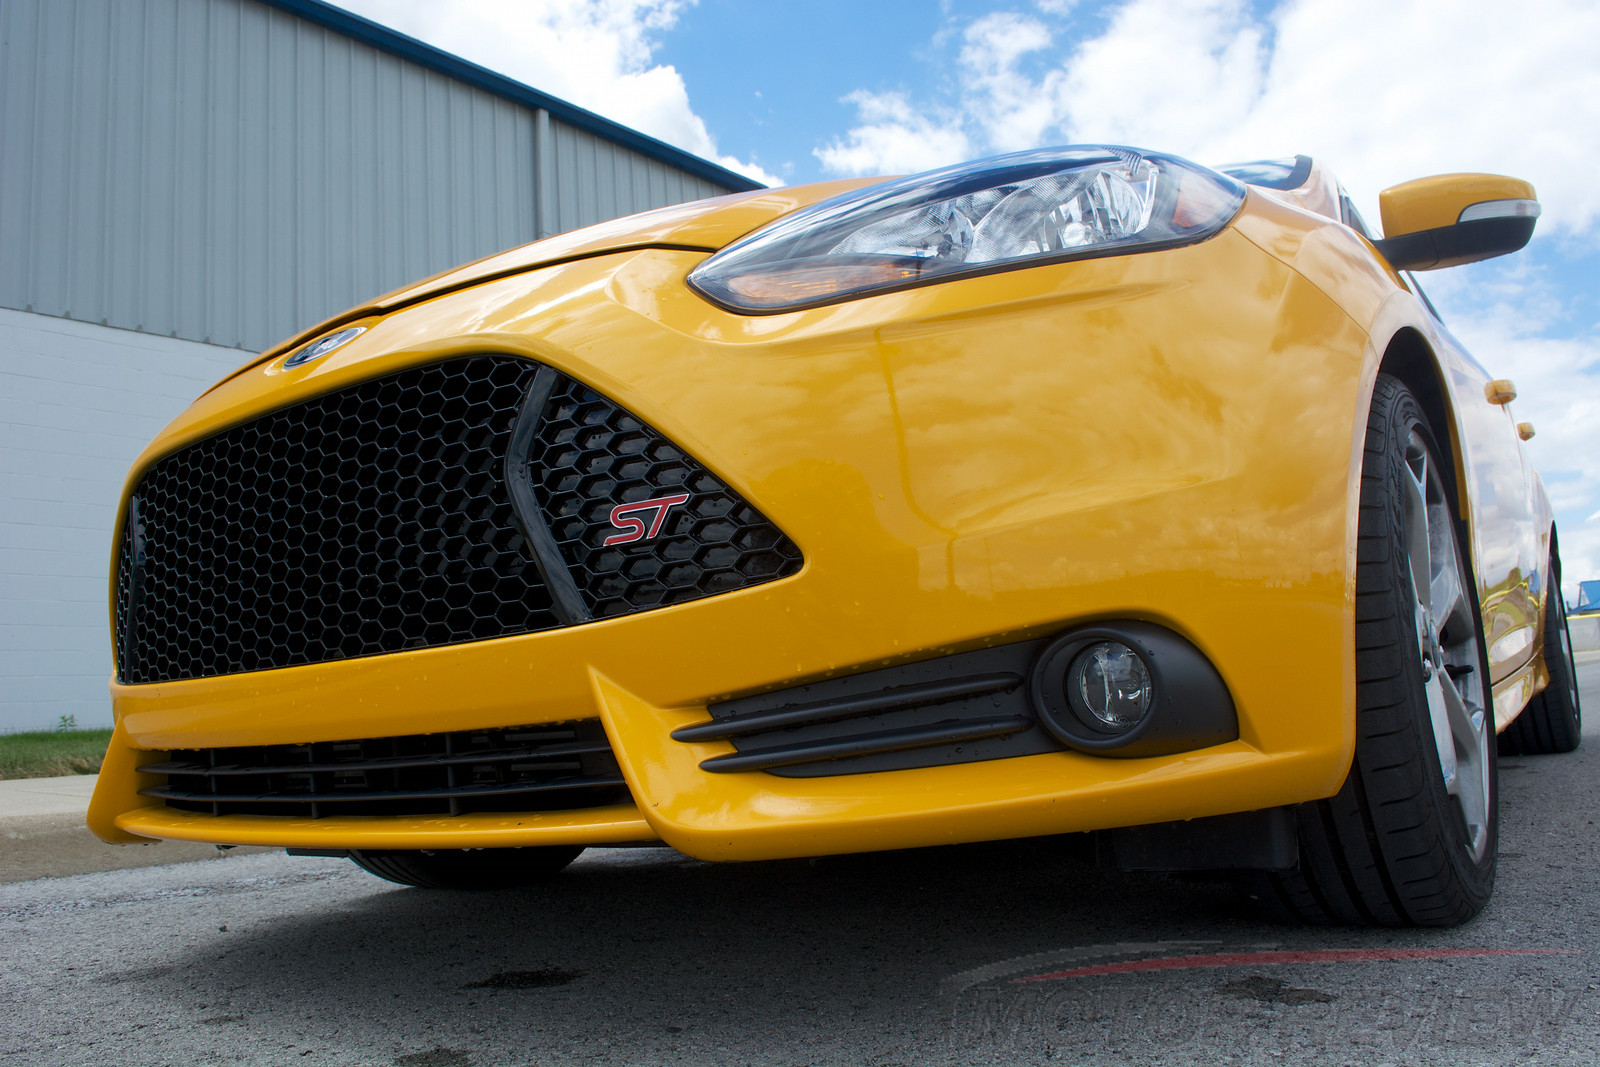 2014 ford focus st review 2 motor review. Cars Review. Best American Auto & Cars Review